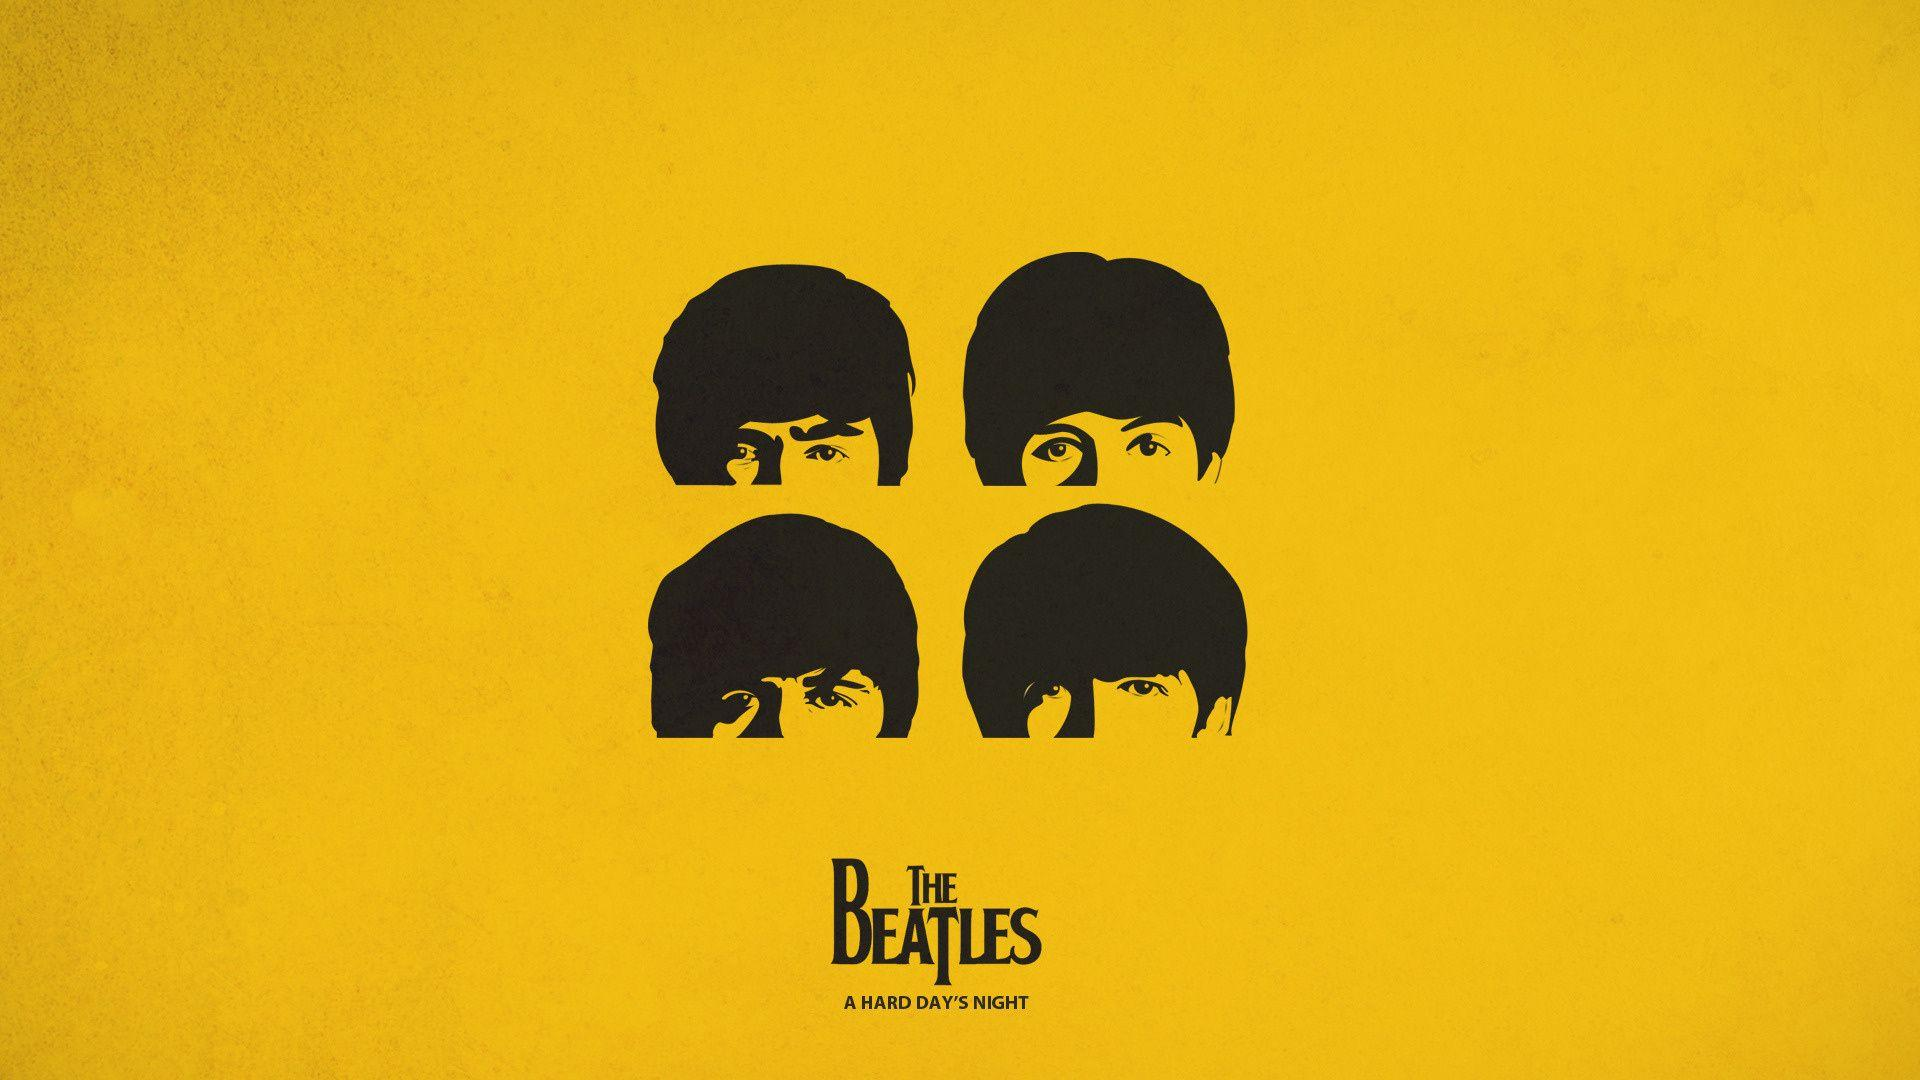 Wallpaper Beatles, simple, graphics, a hard days night, Ringo ...